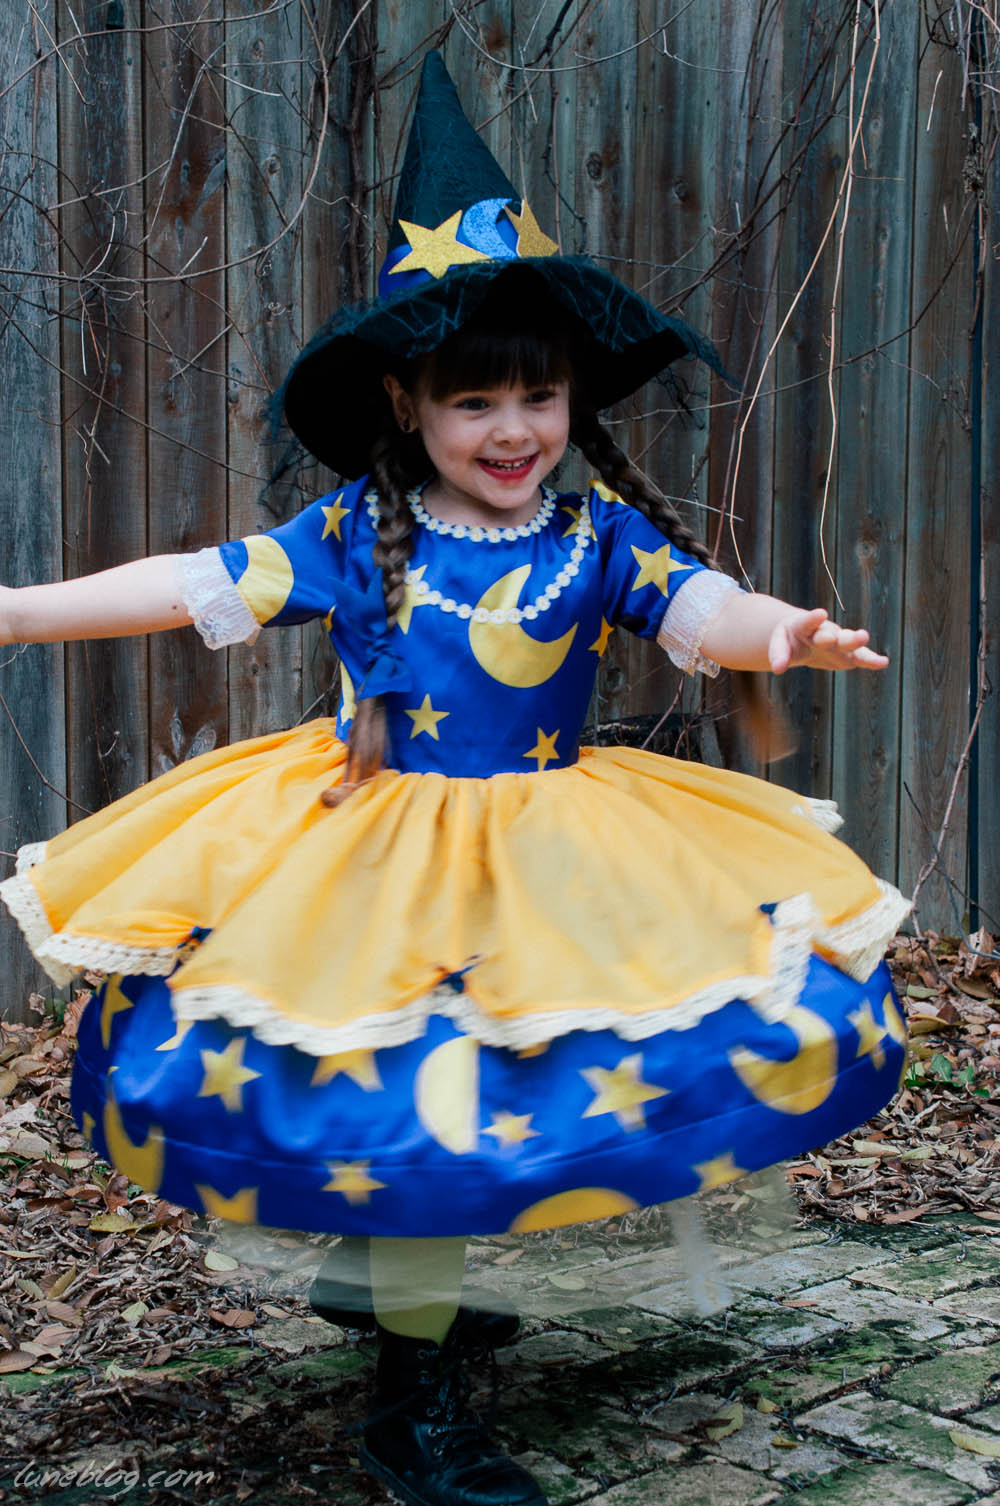 halloween costumes 2015 lune travels blog (16 of 39).jpg